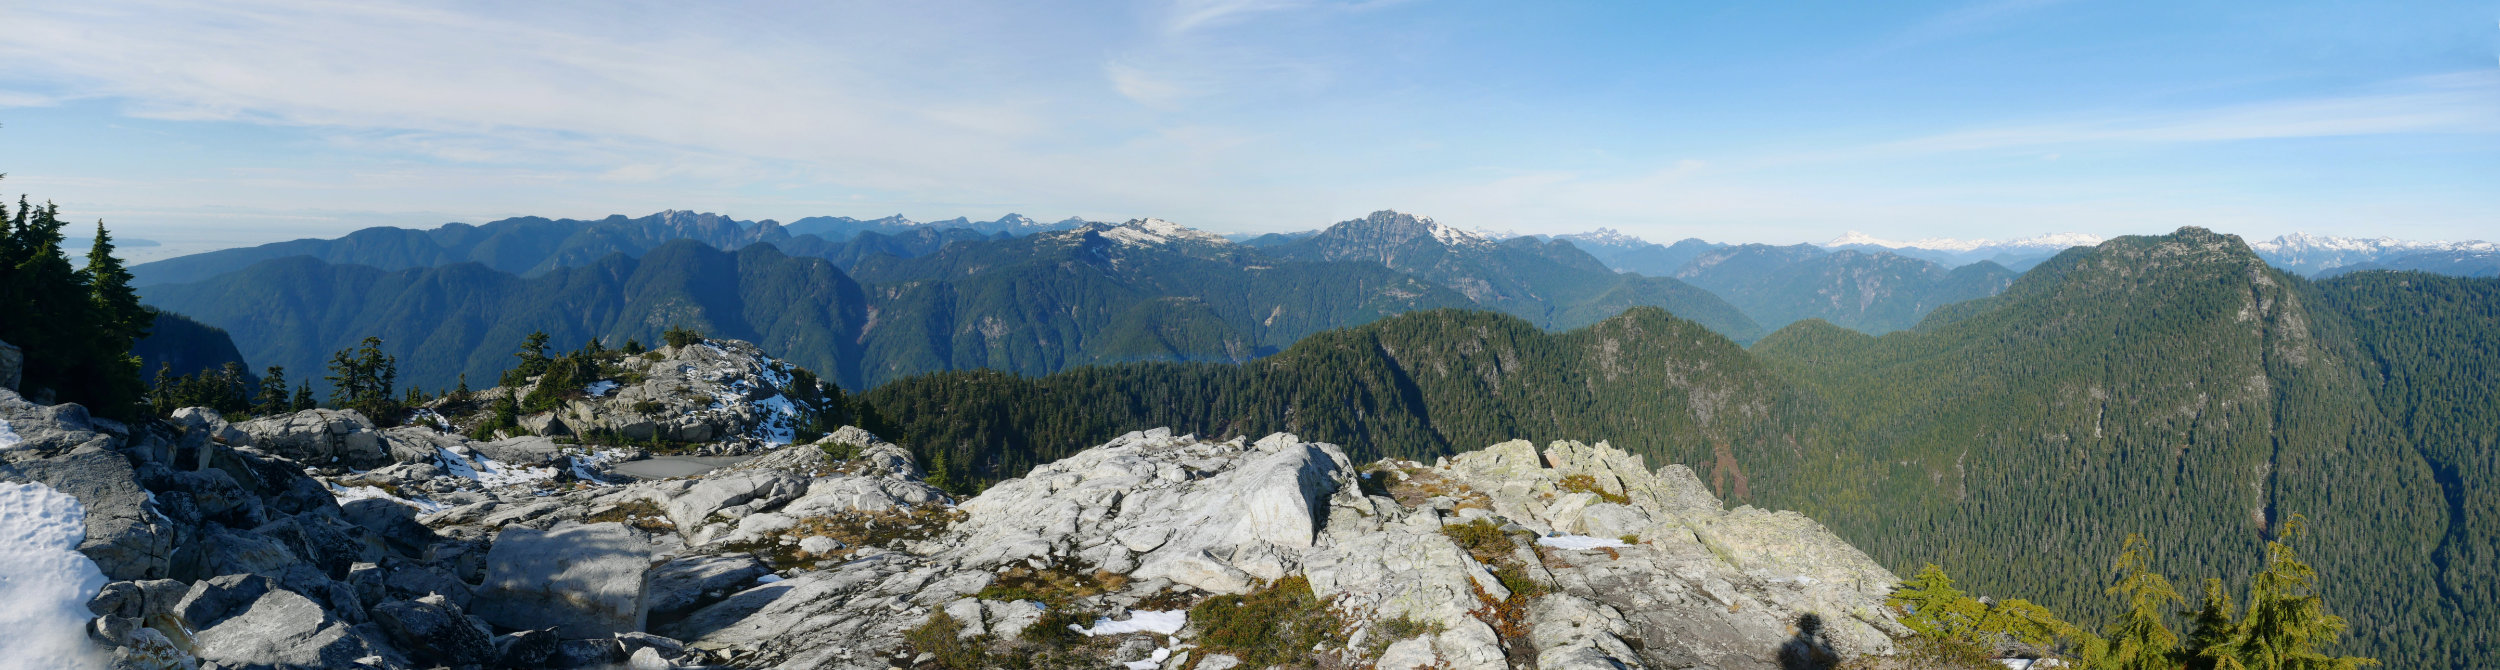 Looking West from Mount Elsay. The first line of Mountains is the Vicar's ridge. Behind that is Lynn Peak, Needles, Coliseum to Cathedral Mountain. Behind that are Grouse, Crown etc. Beyond that are the Mountains on the Sea to Sky Highway, like the Lions and Unnecessary Mountain